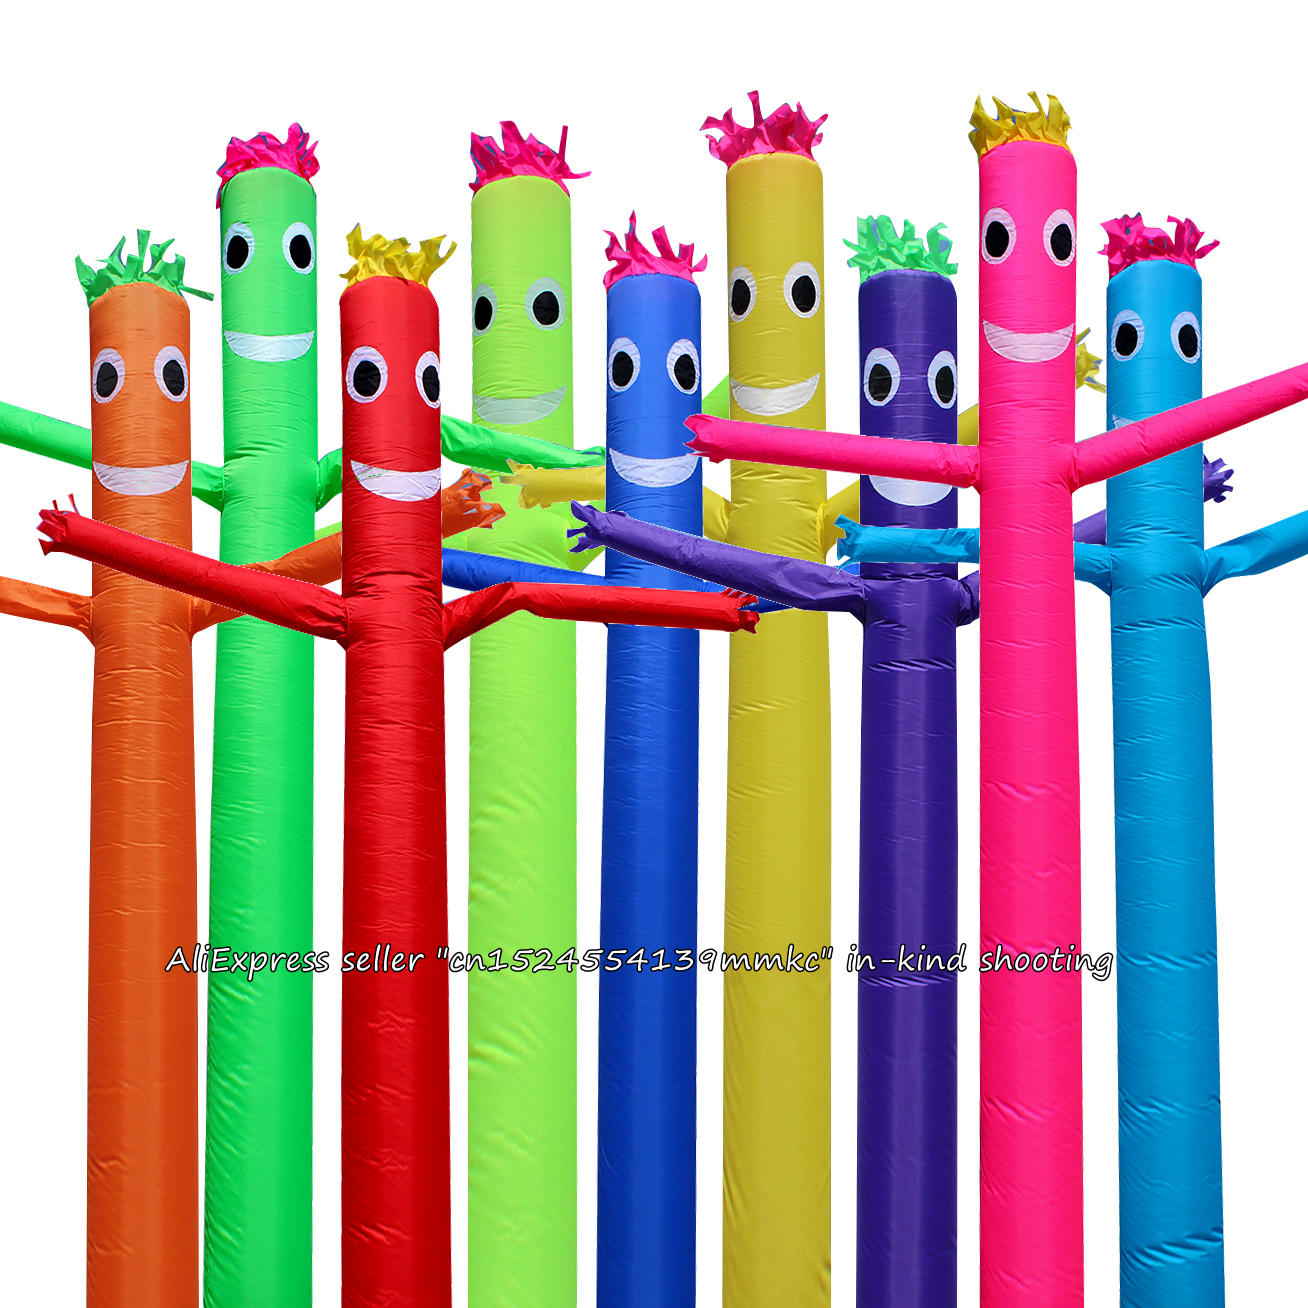 10ft 12inch Air Dancer Sky Dancer Inflatable Tube Dance Puppet Wind Flying Promotional Commercial Inflatable Bouncers